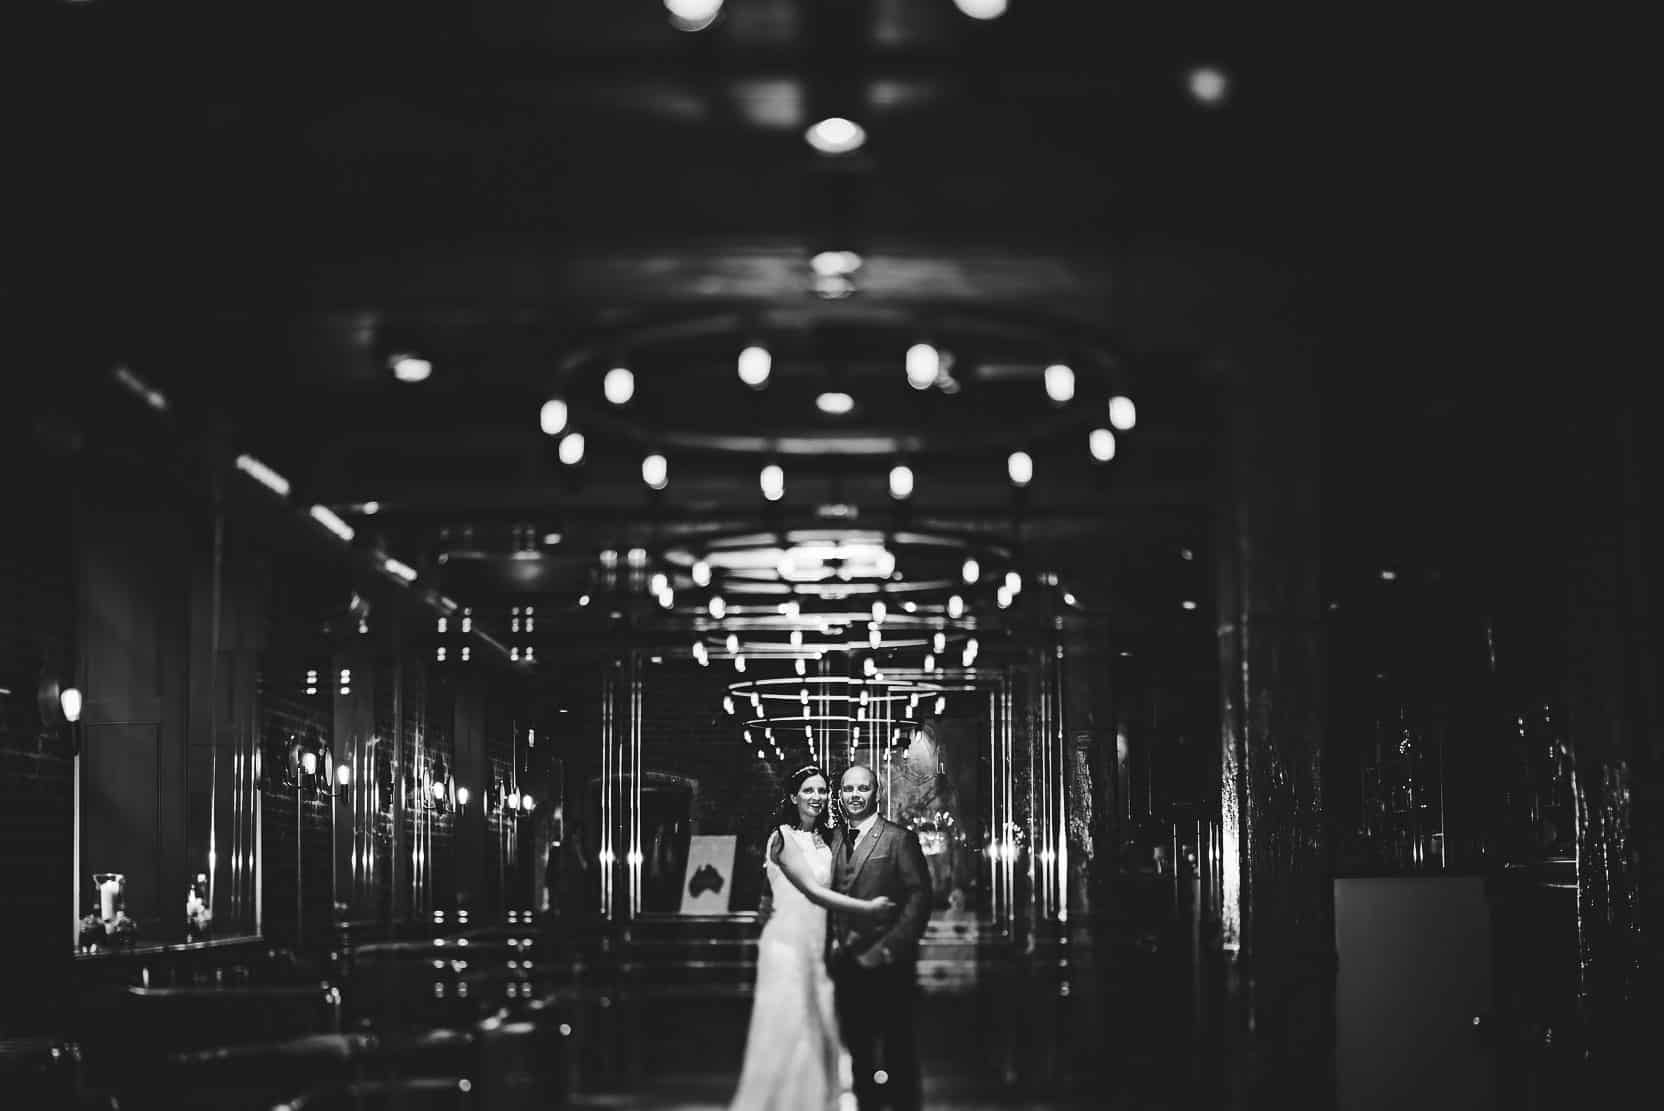 wedding_photography_asia_house_london_ld_justin_bailey_photography_015